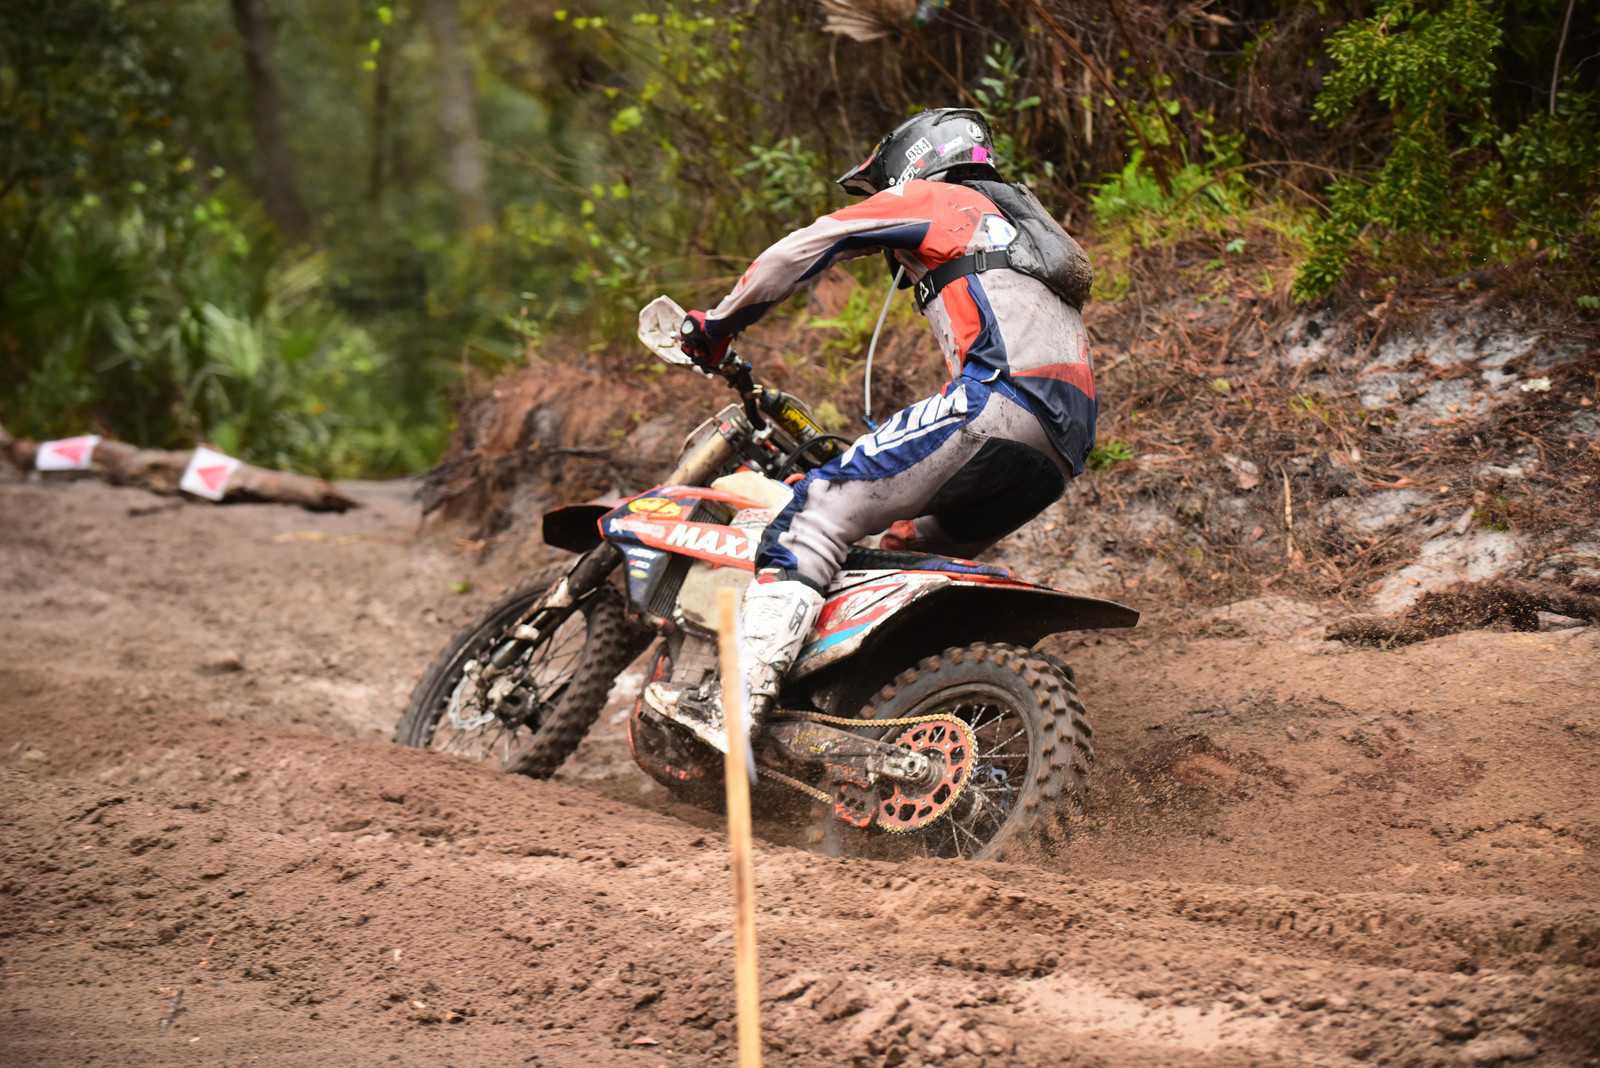 Chris Bach - Wild Boar GNCC - Motocross Pictures - Vital MX